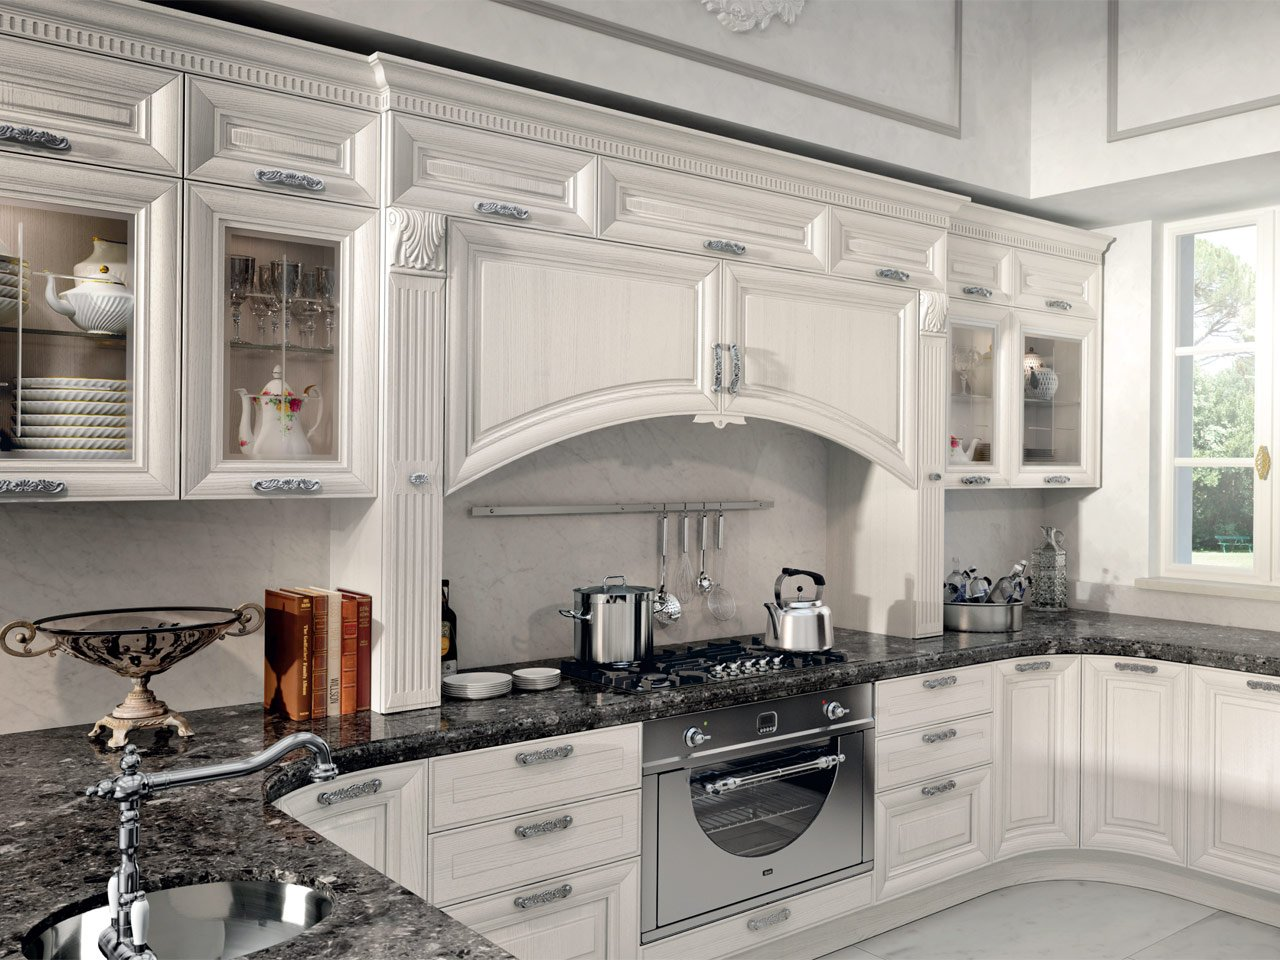 Pantheon kitchen by cucine lube - Cucina lube pantheon ...